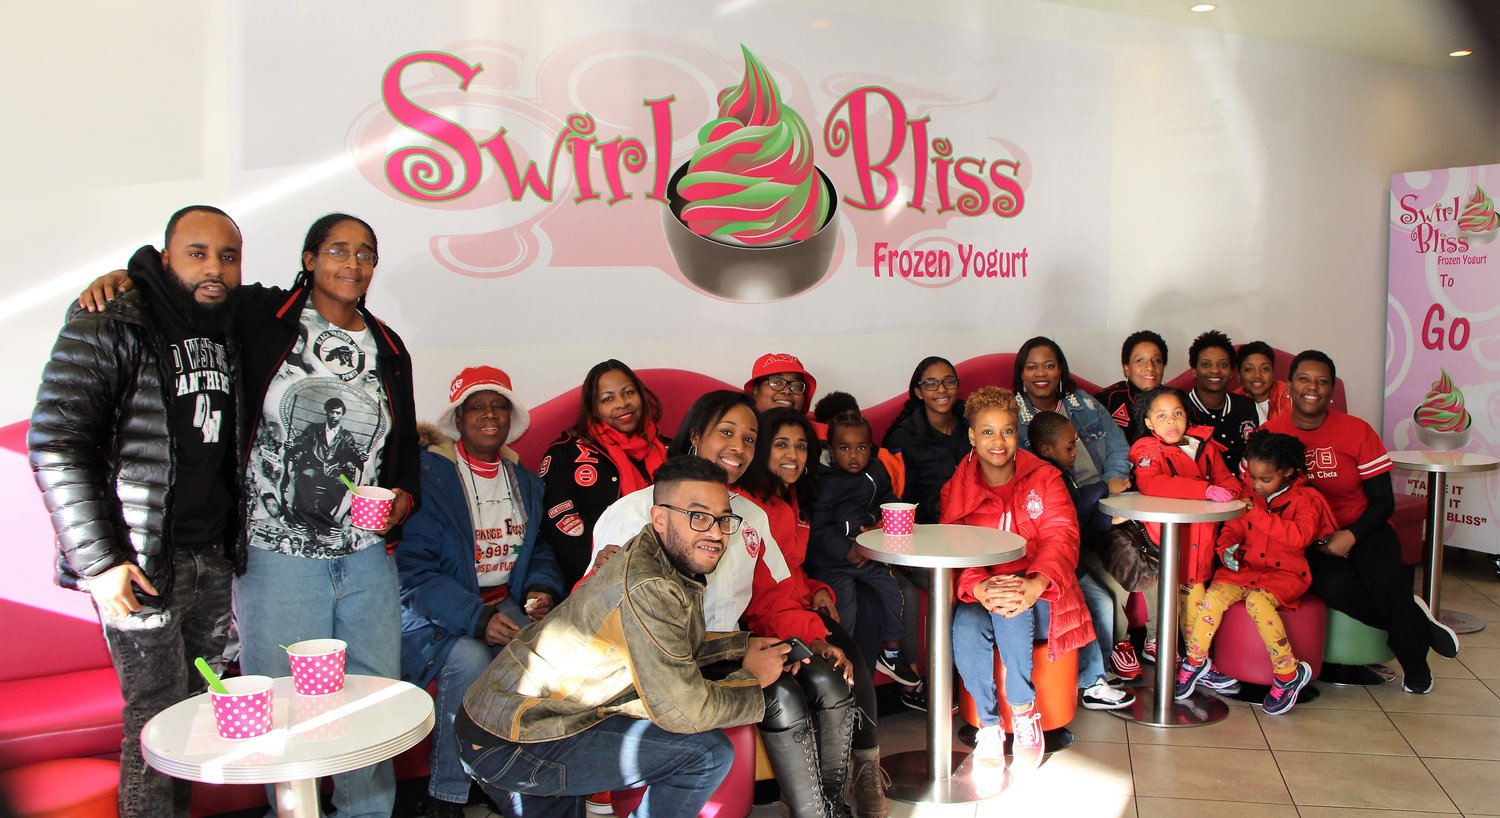 The Nassau Alumnae Chapter of the Delta Sigma Theta Sorority patronized small businesses around Nassau County, including Swirl Bliss in Baldwin, last Saturday during its third annual Small Business Crawl.